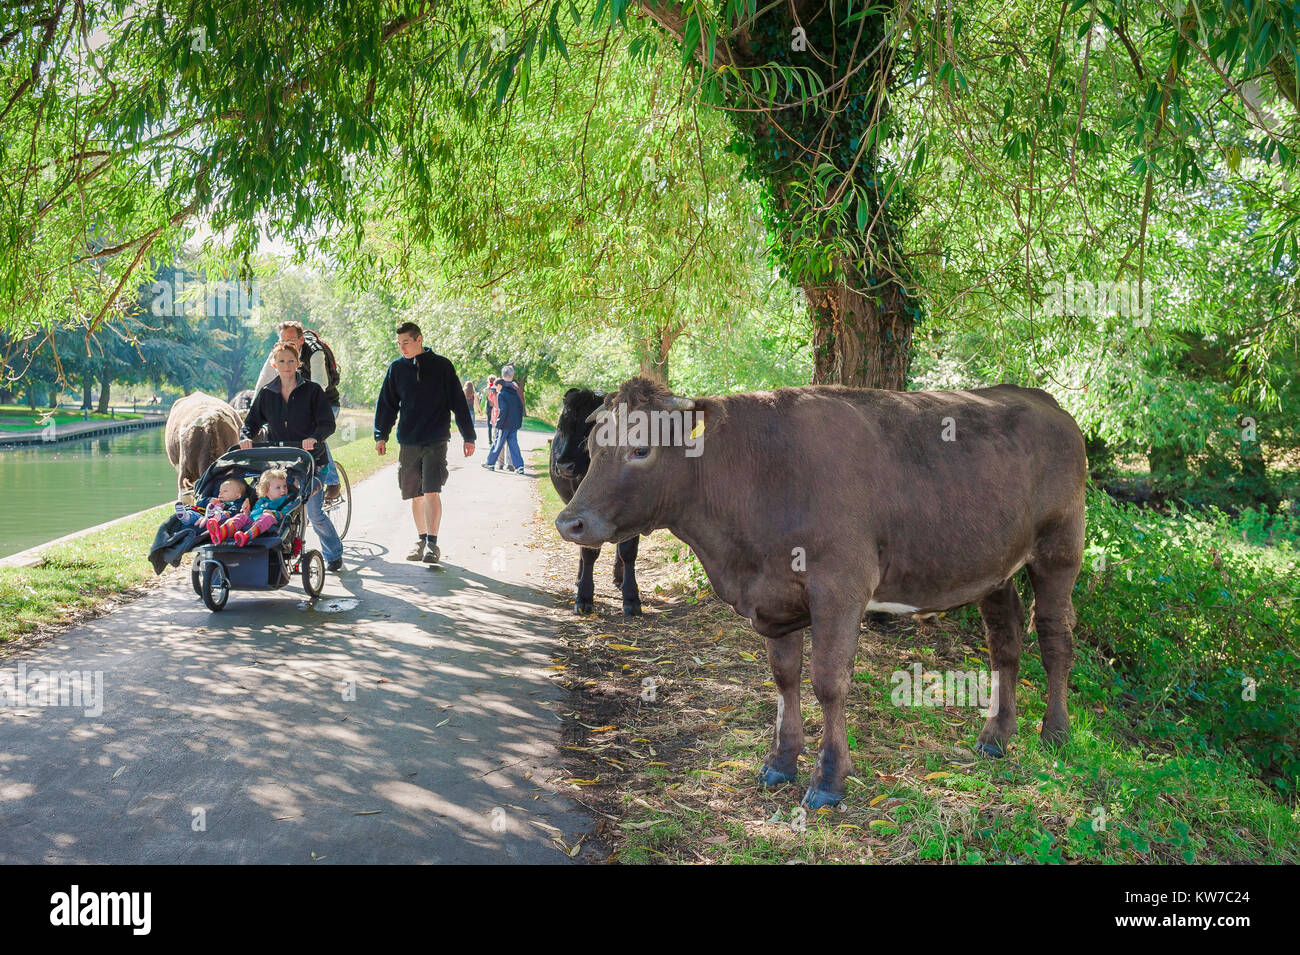 Cambridge UK summer, a young family walking beside the River Cam pass cattle roaming in the Backs (water meadows) - Stock Image